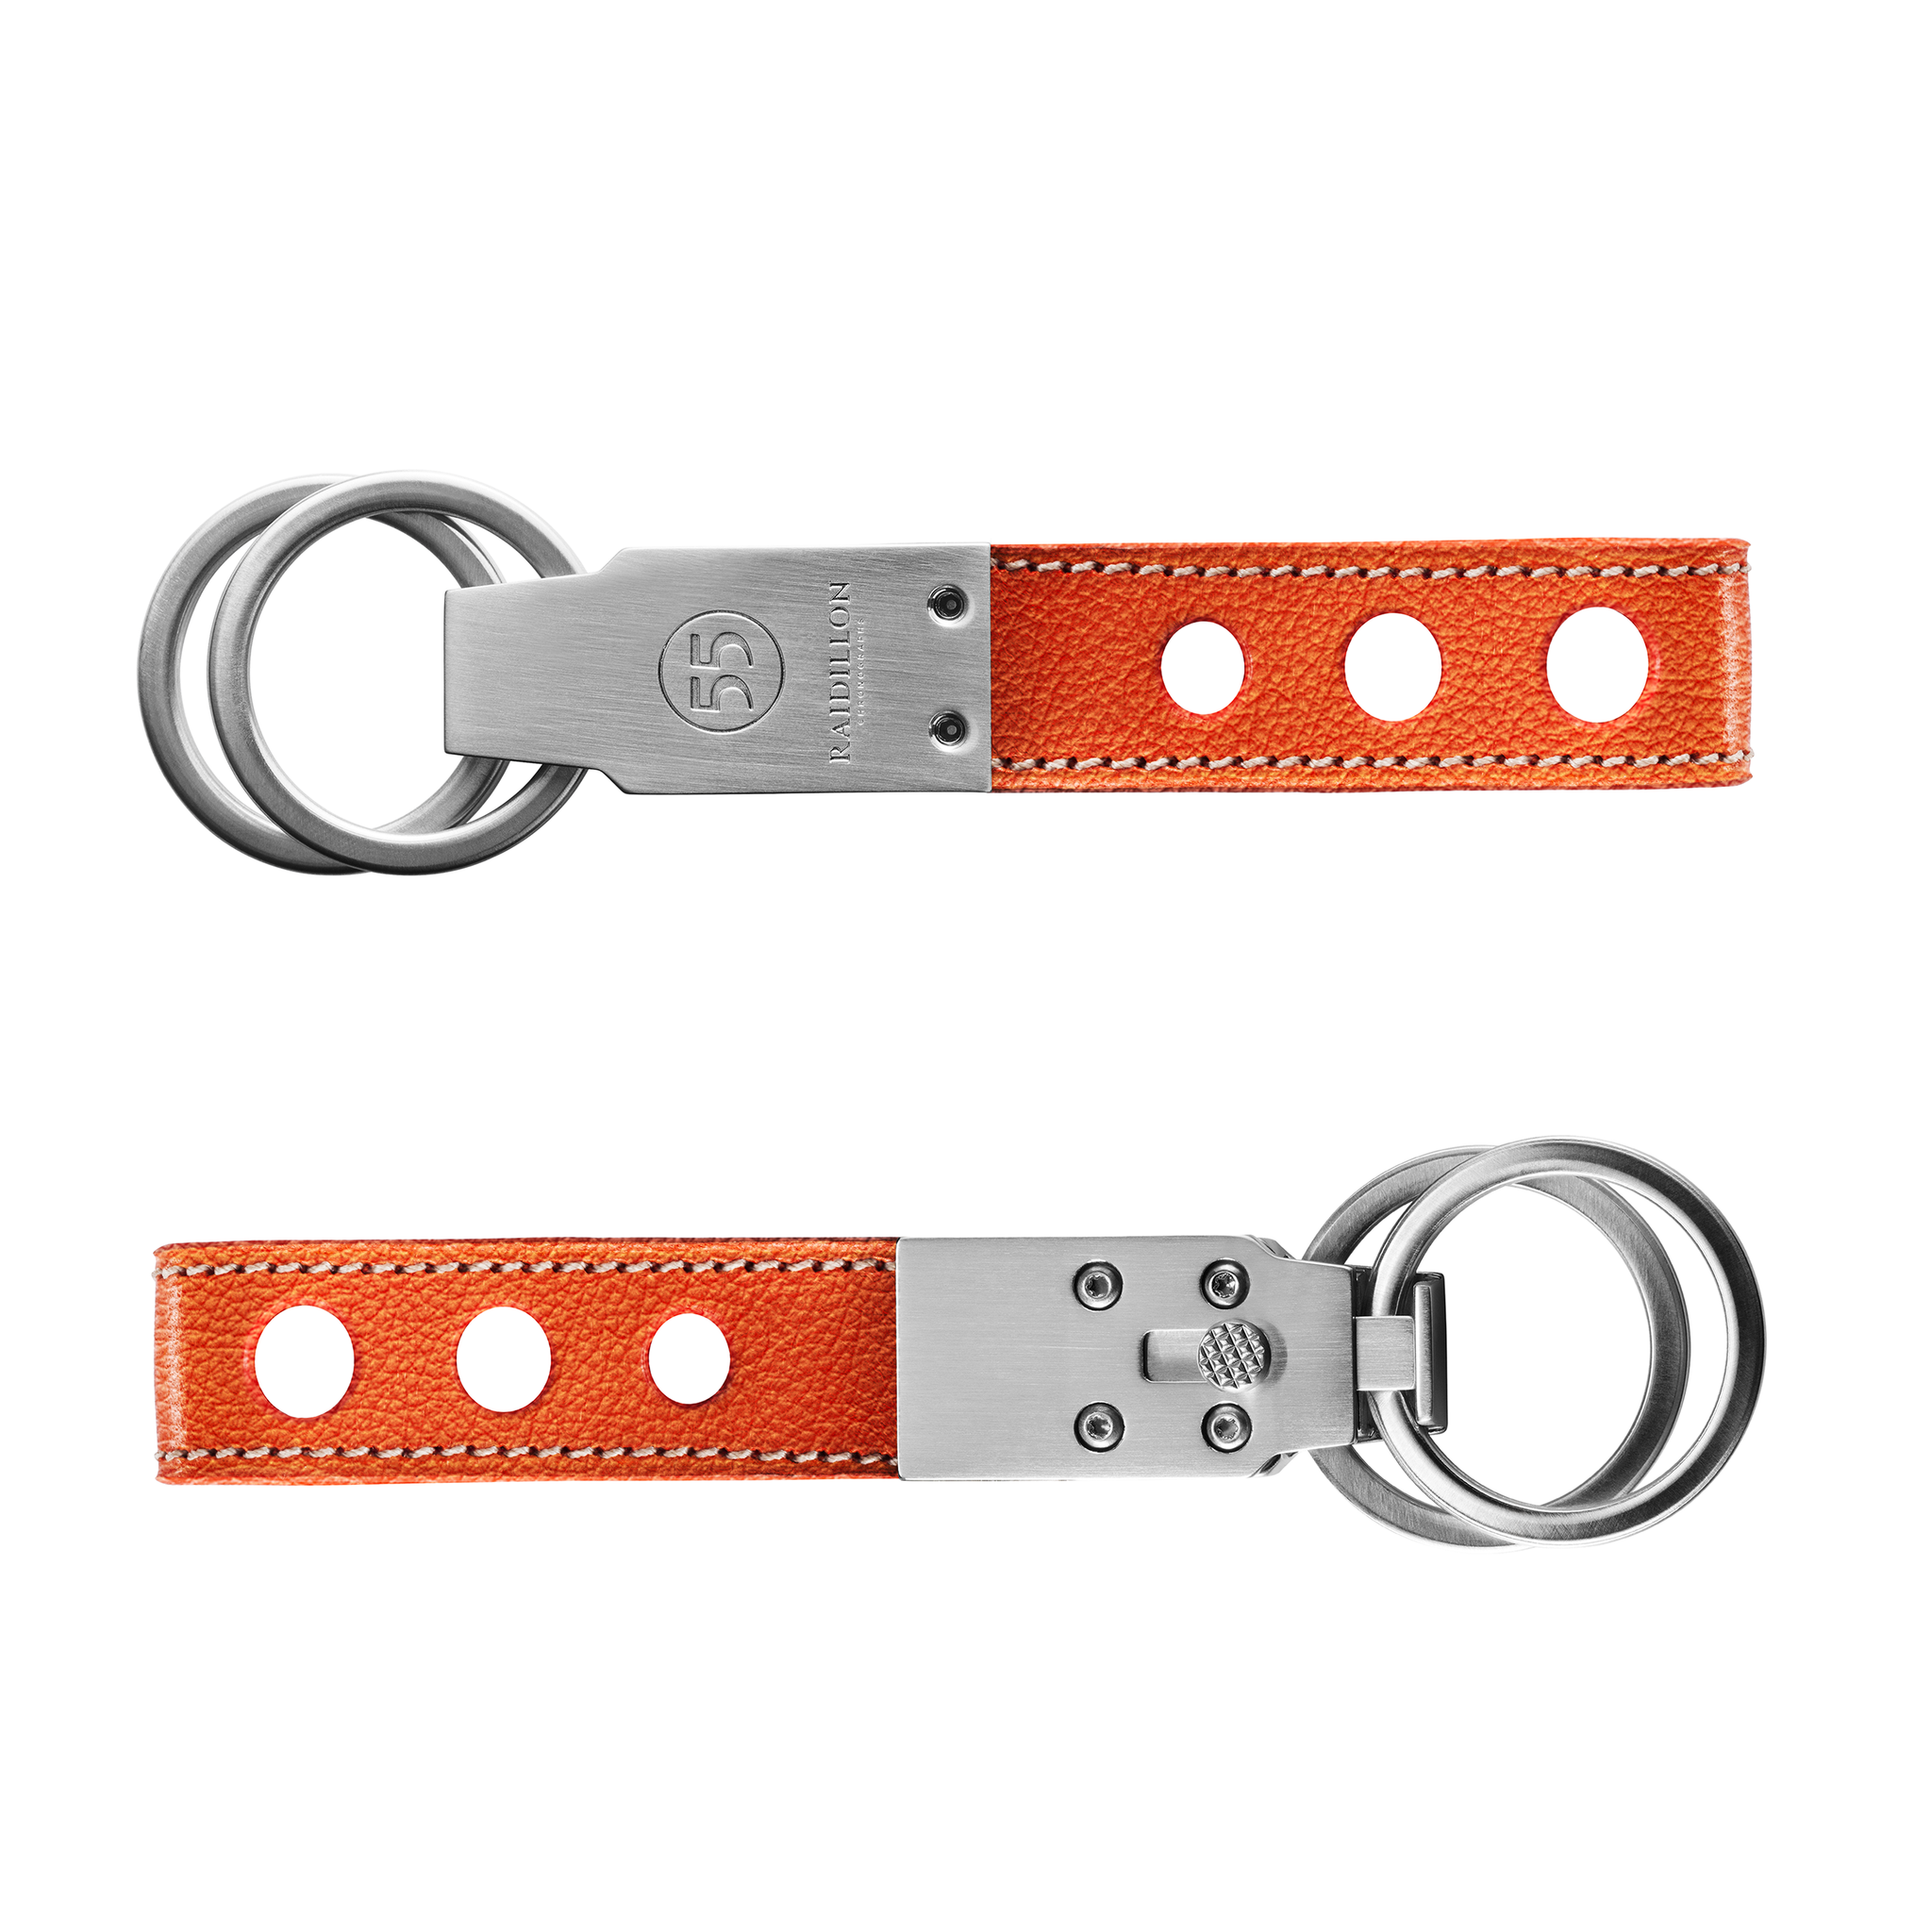 products llc trading key rings chain keyholders belfast product with keychain